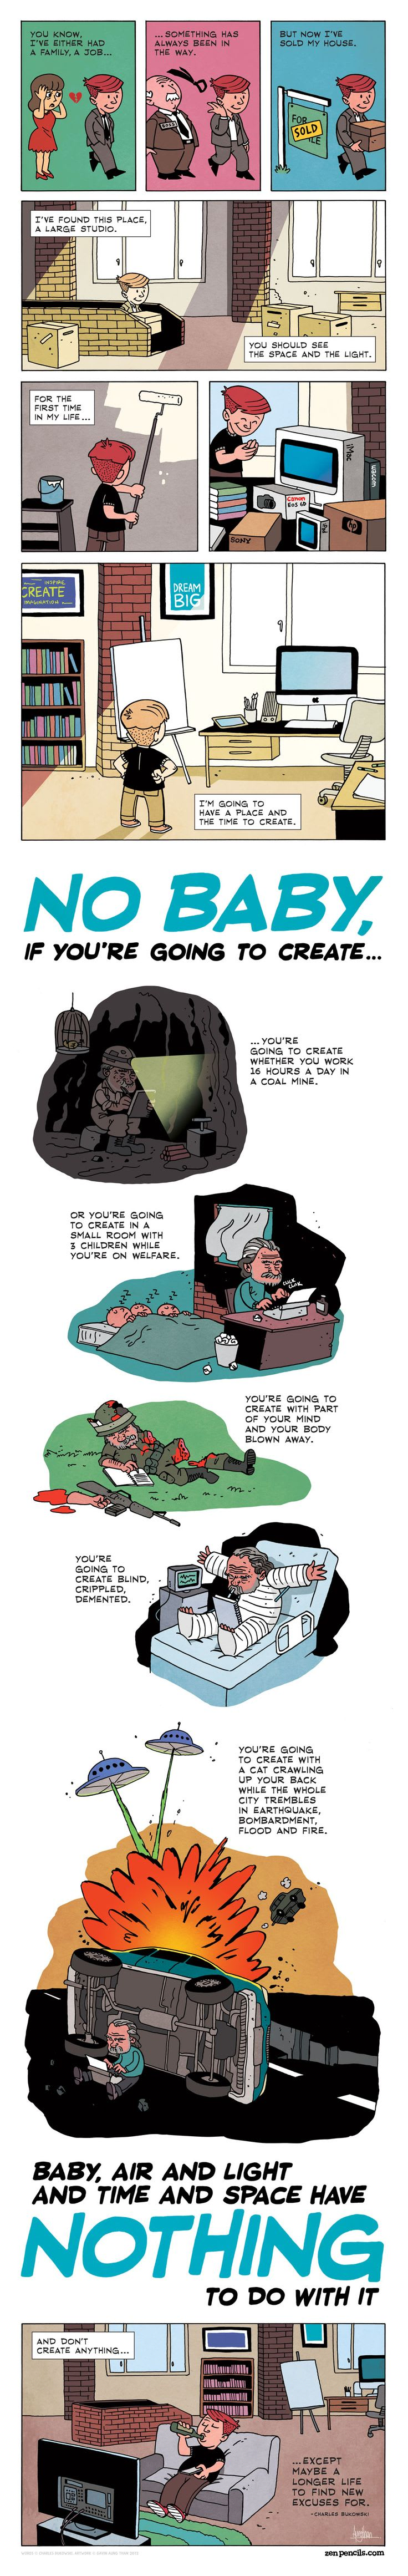 Charles Bukowski's quote on air and light and time and space as presented by Zen Pencils before the artist was asked to take it down